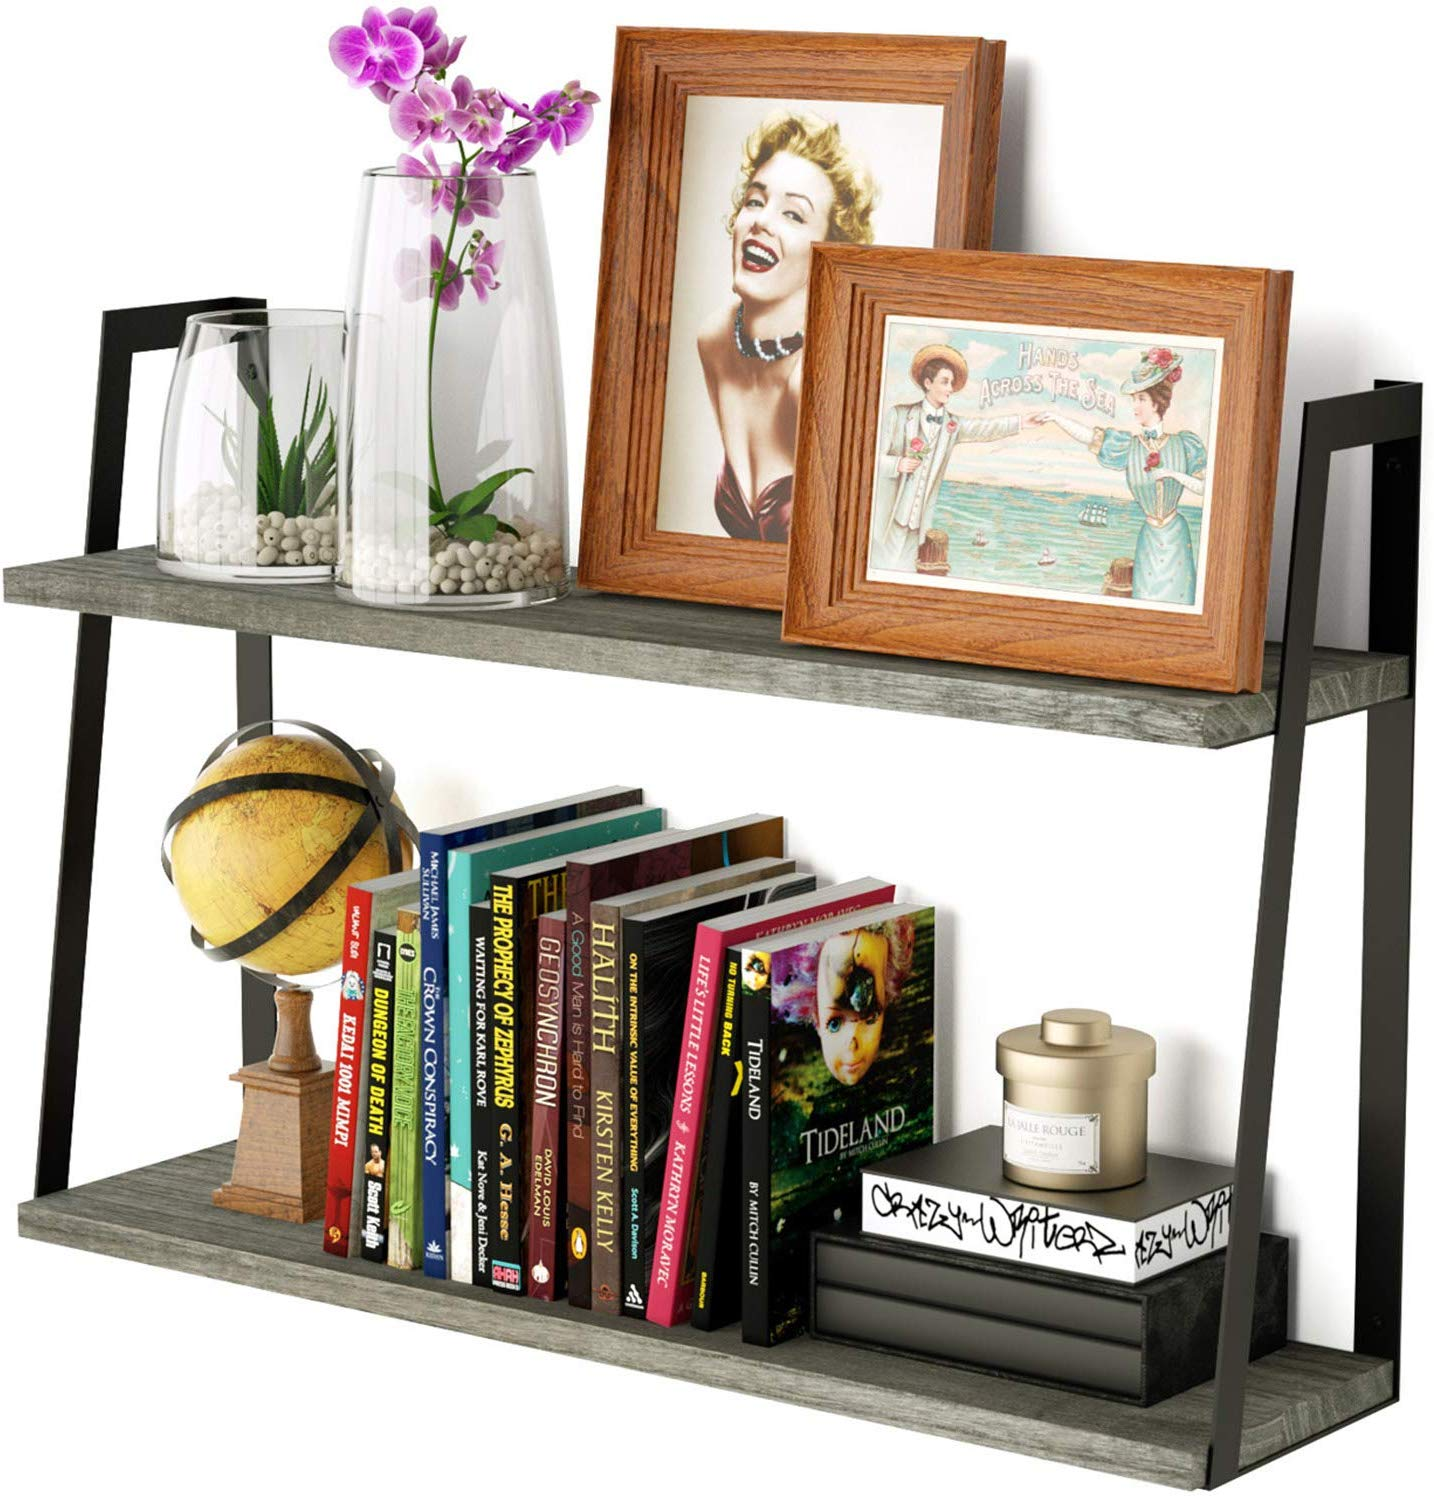 Floating Wall Shelves, 2-Tier Rustic Wood Shelves for Bedoom, Bathroom, Living Room, Kitchen (Weathered Grey)